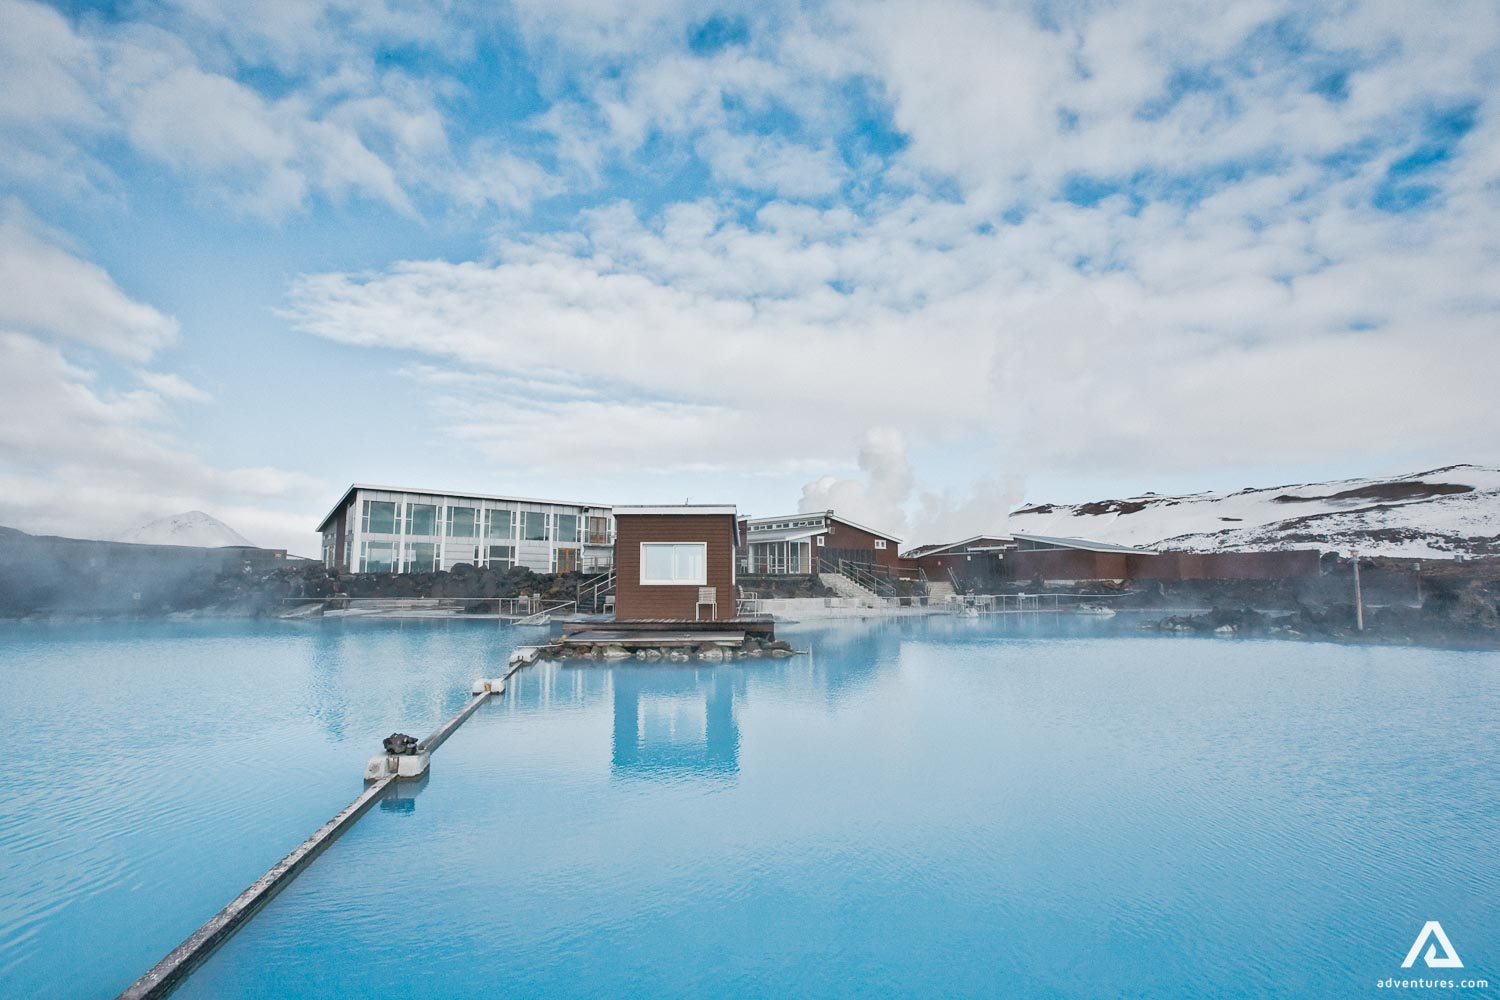 Geothermal Bathing and Swimming in Myvatn